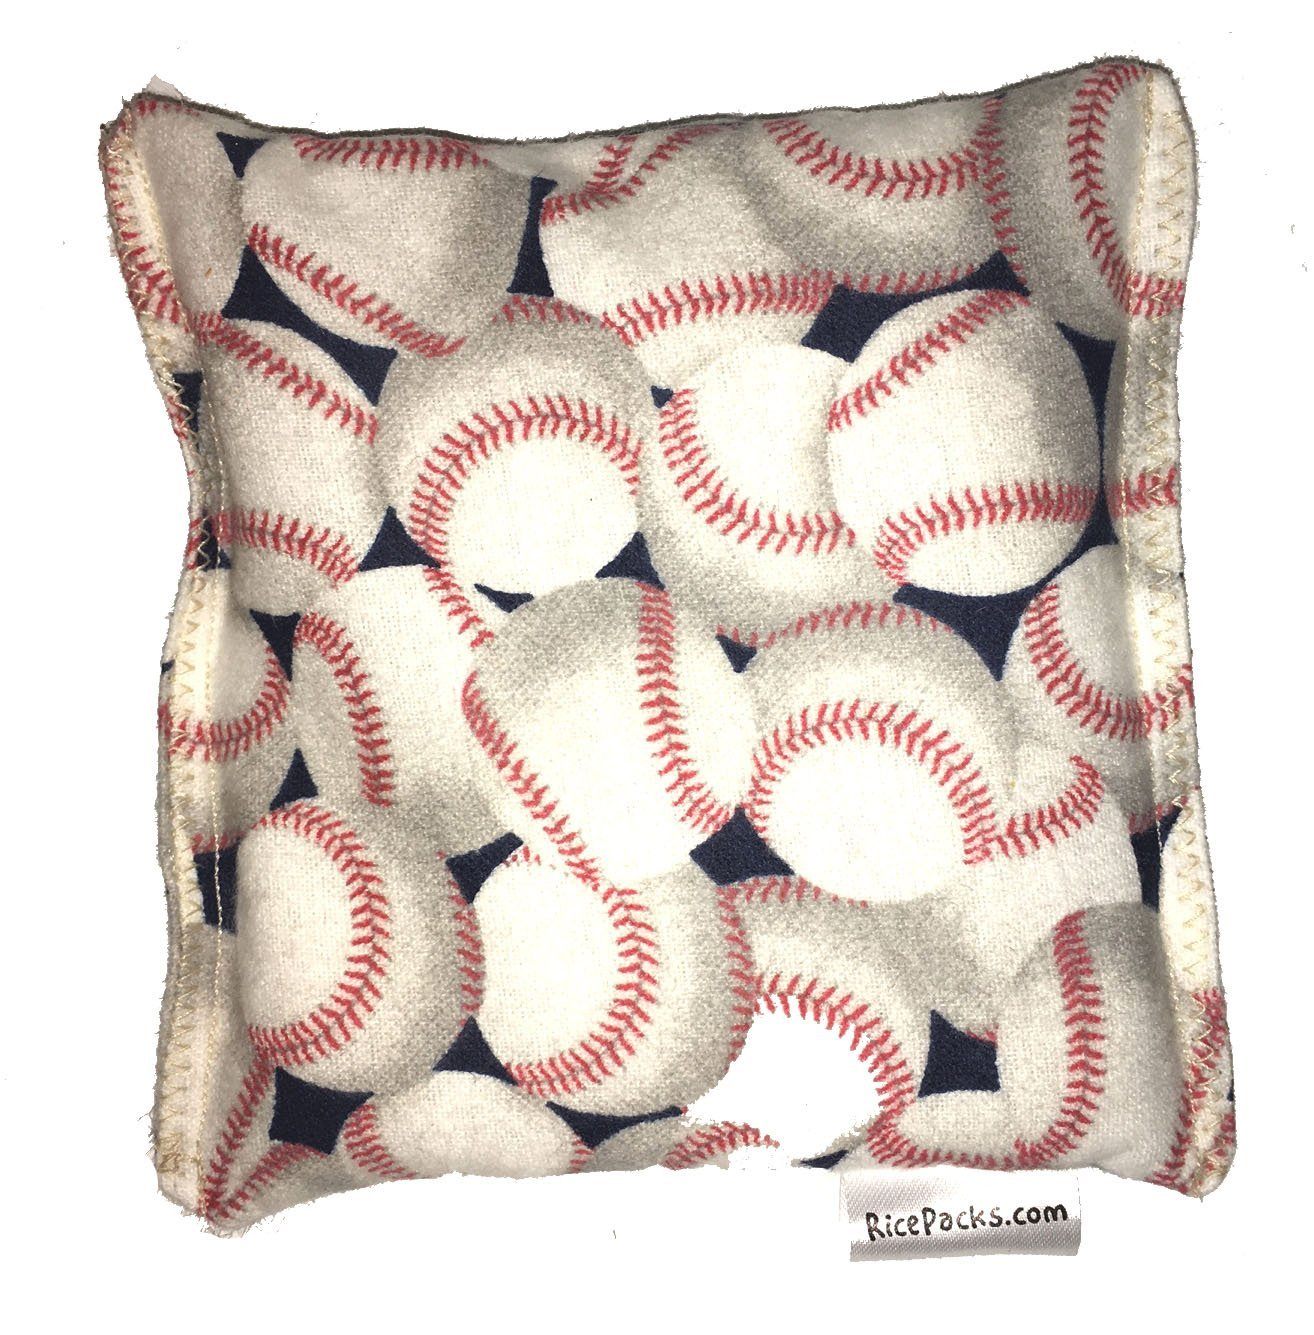 Baseball 2 Boo-Boo Bags Hot/Cold Packs Reusable Ouchee Heat Packs Hot Cold Pack Microwave Heating Pad Reusable Ice Pack , Hot Therapy, Cold Therapy, Rice Pack, Booboo Pillow